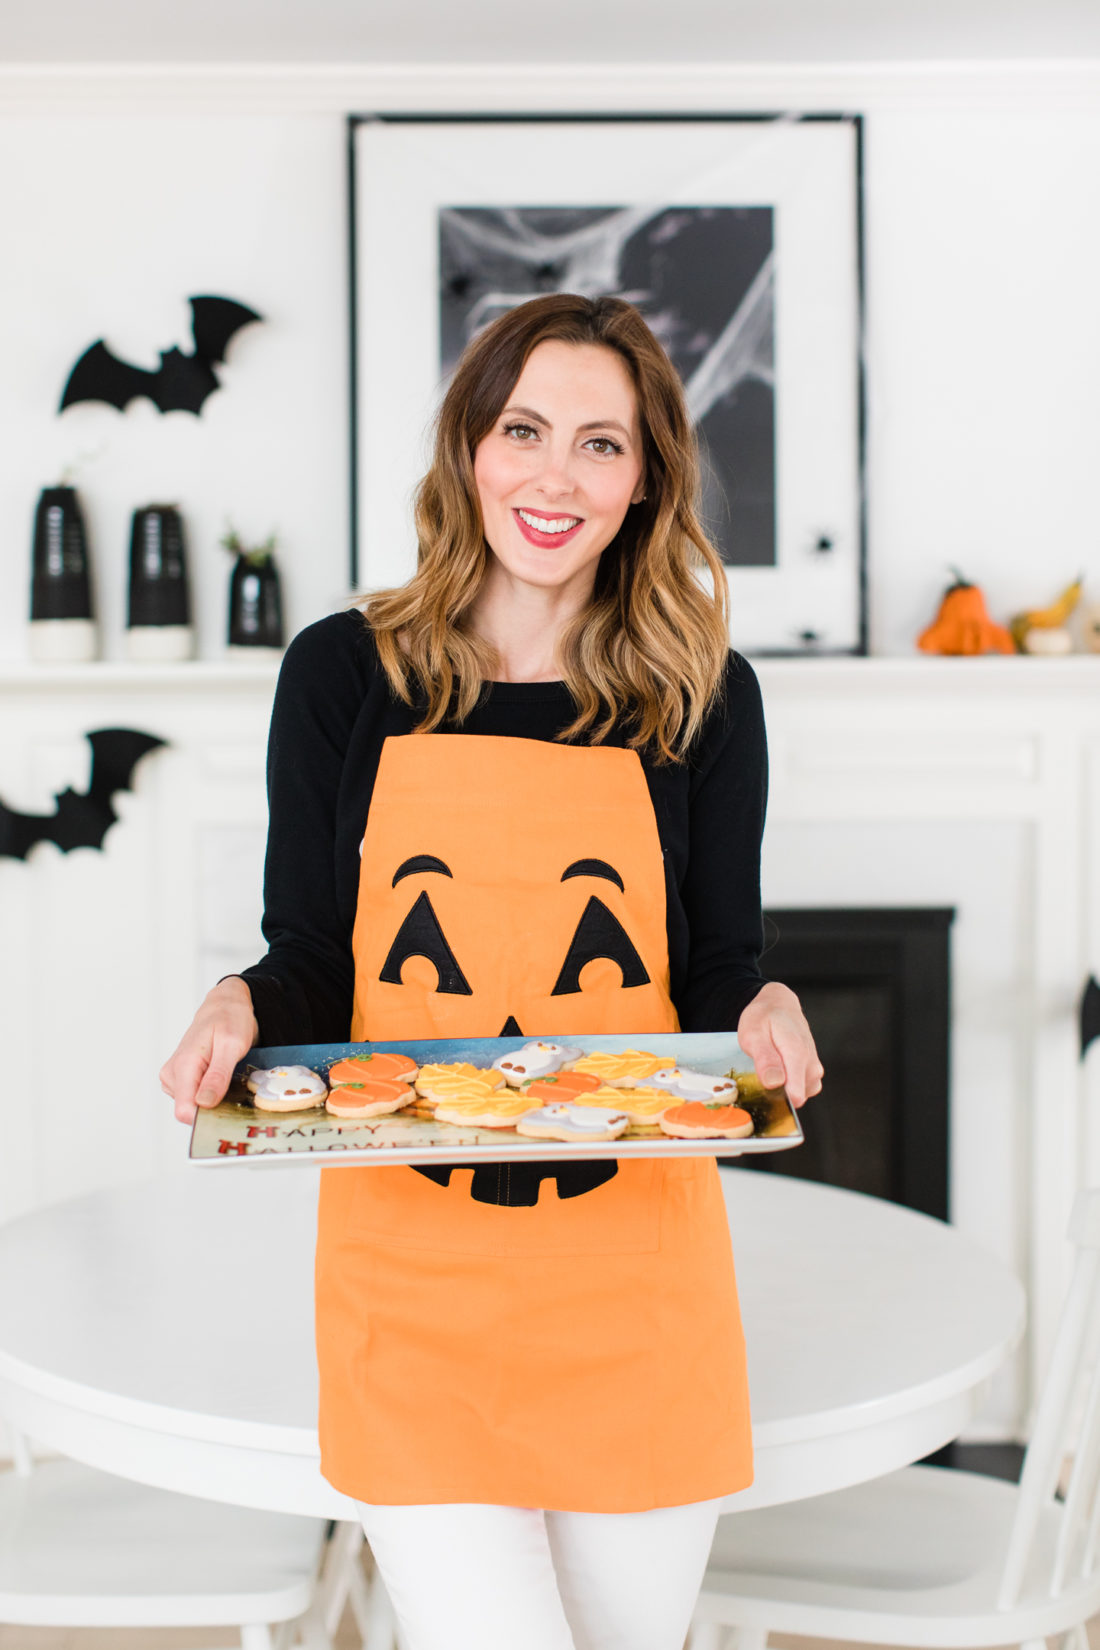 Eva Amurri Martino wears a jack-o-lantern apron and holds a tray of fall-themed cookies for her guests